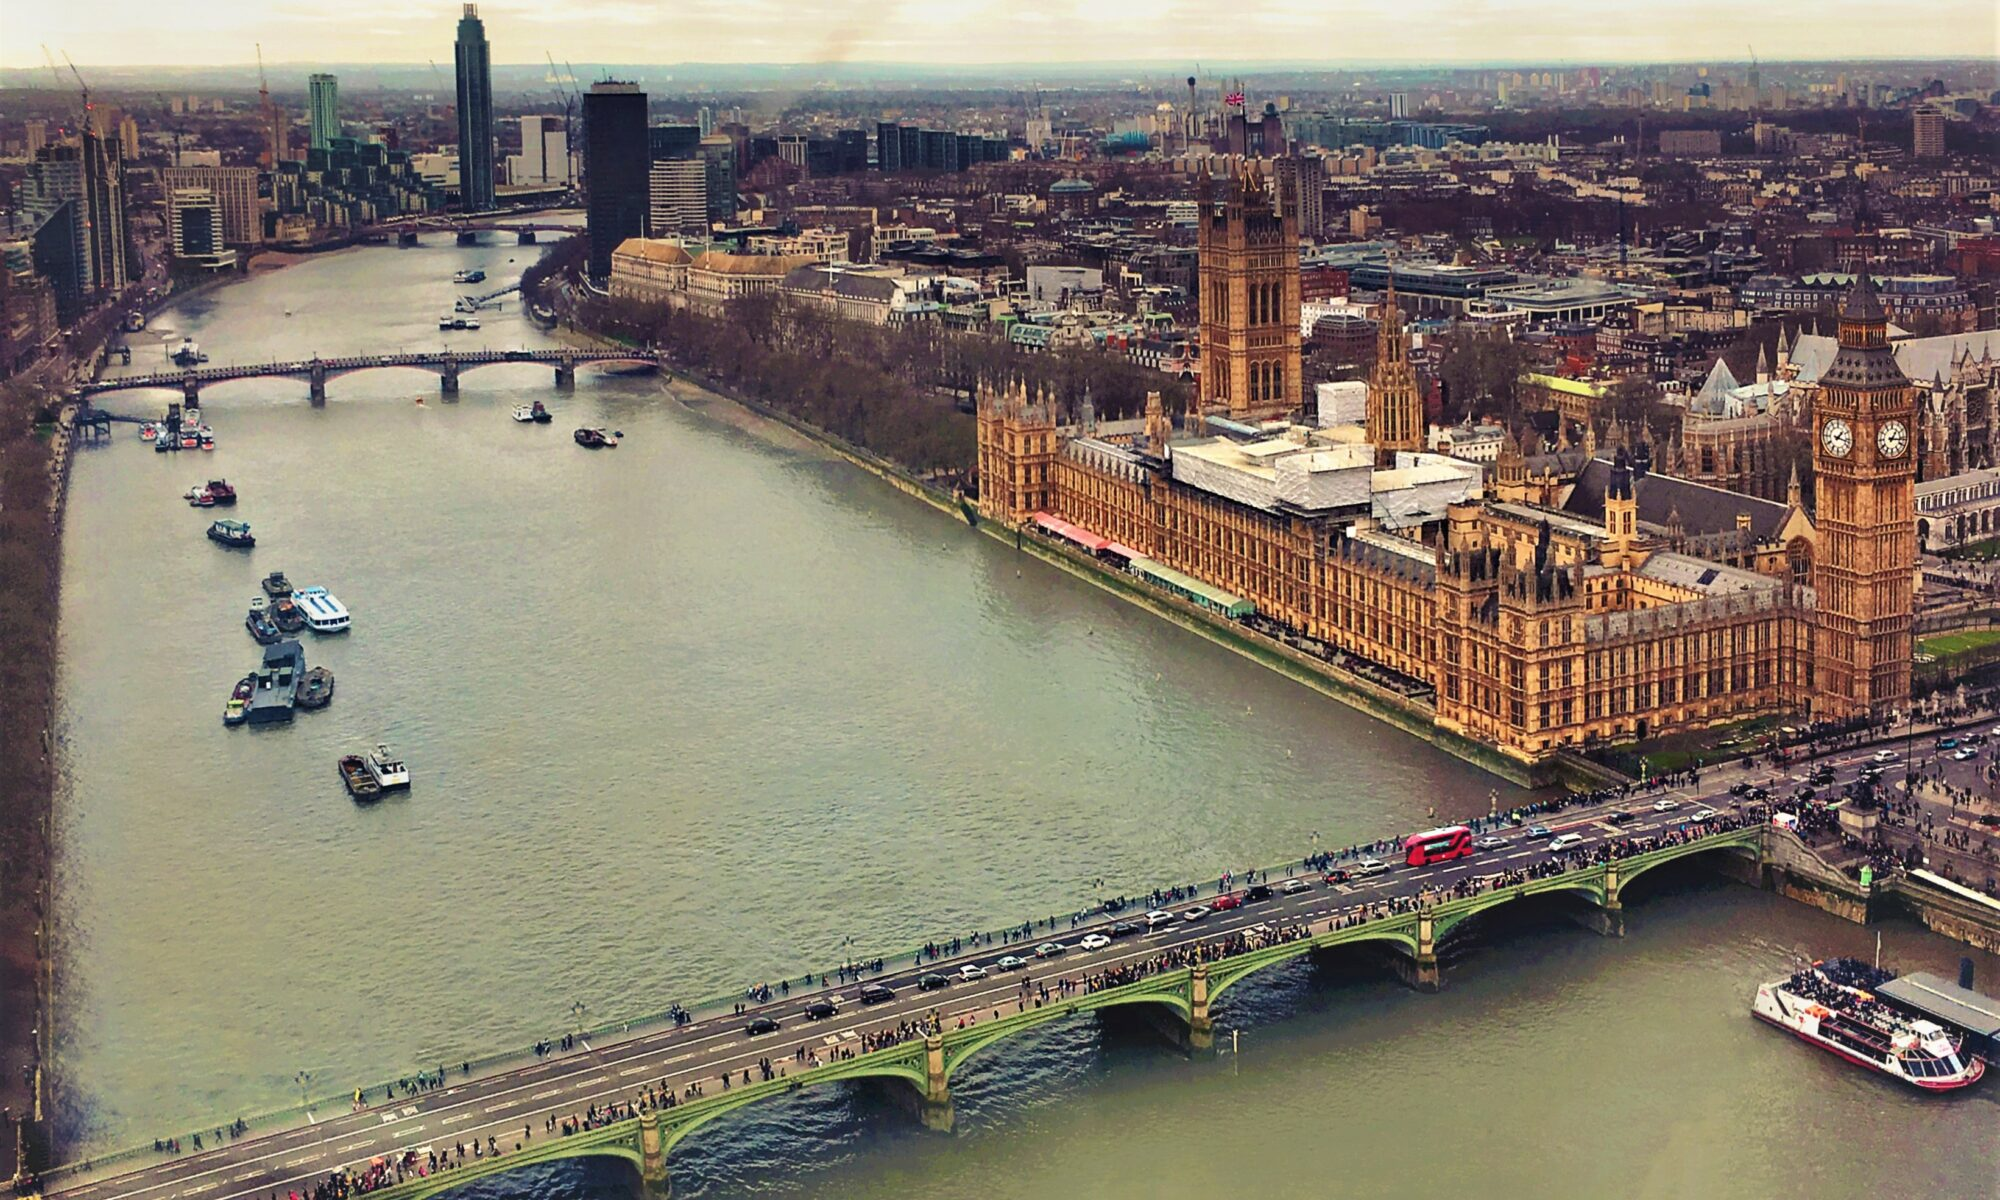 Unique 2 Days Itinerary to visit London